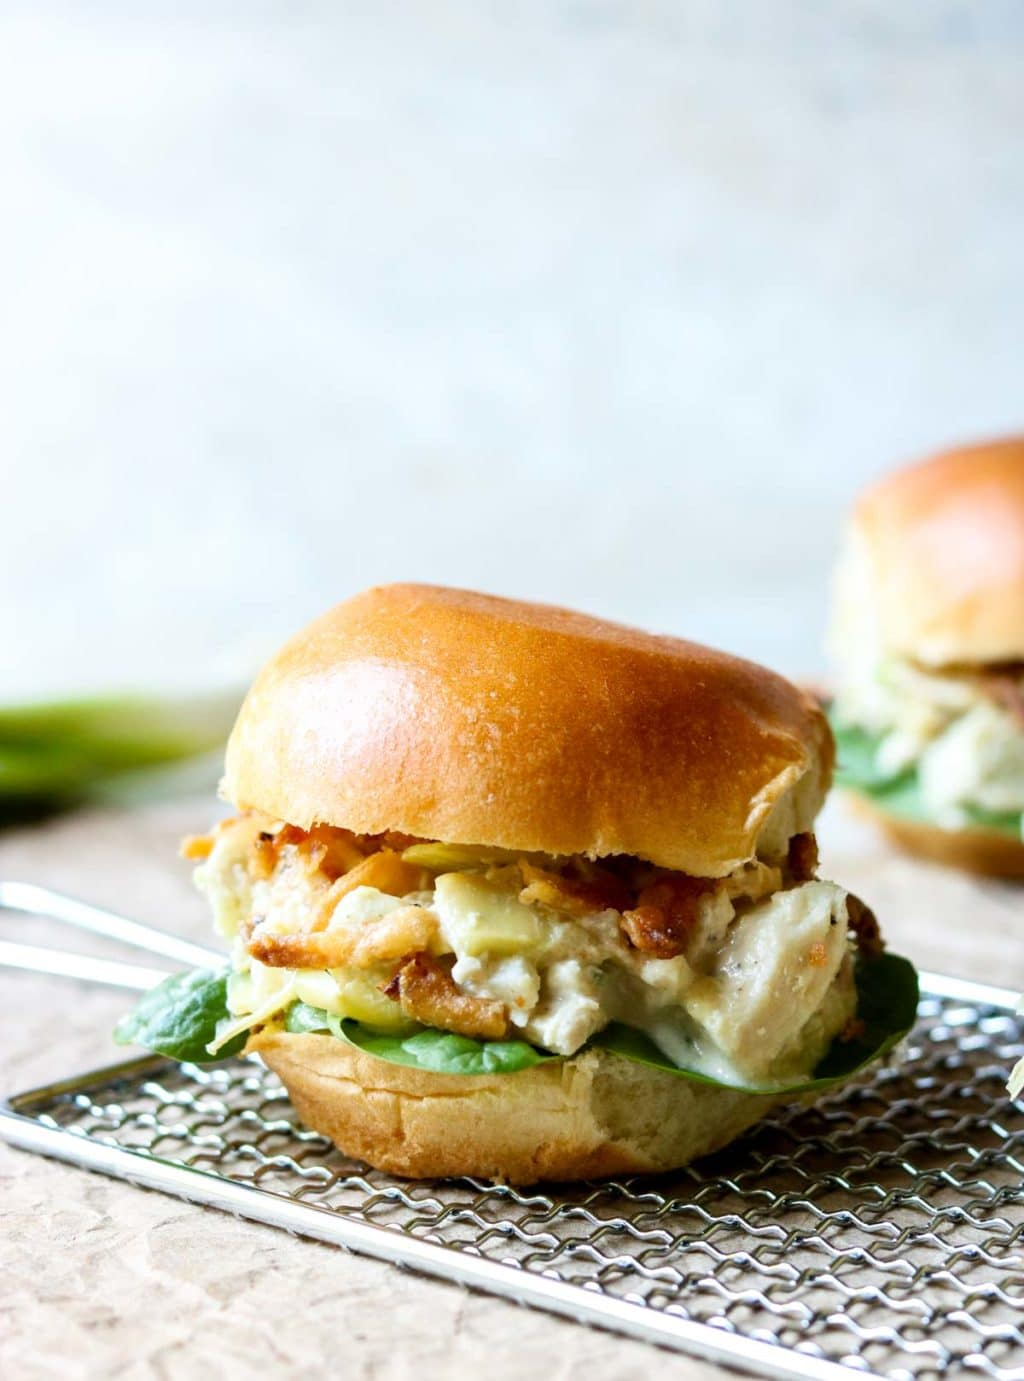 Chicken Salad Sandwich on a brioche bun sitting on a grater